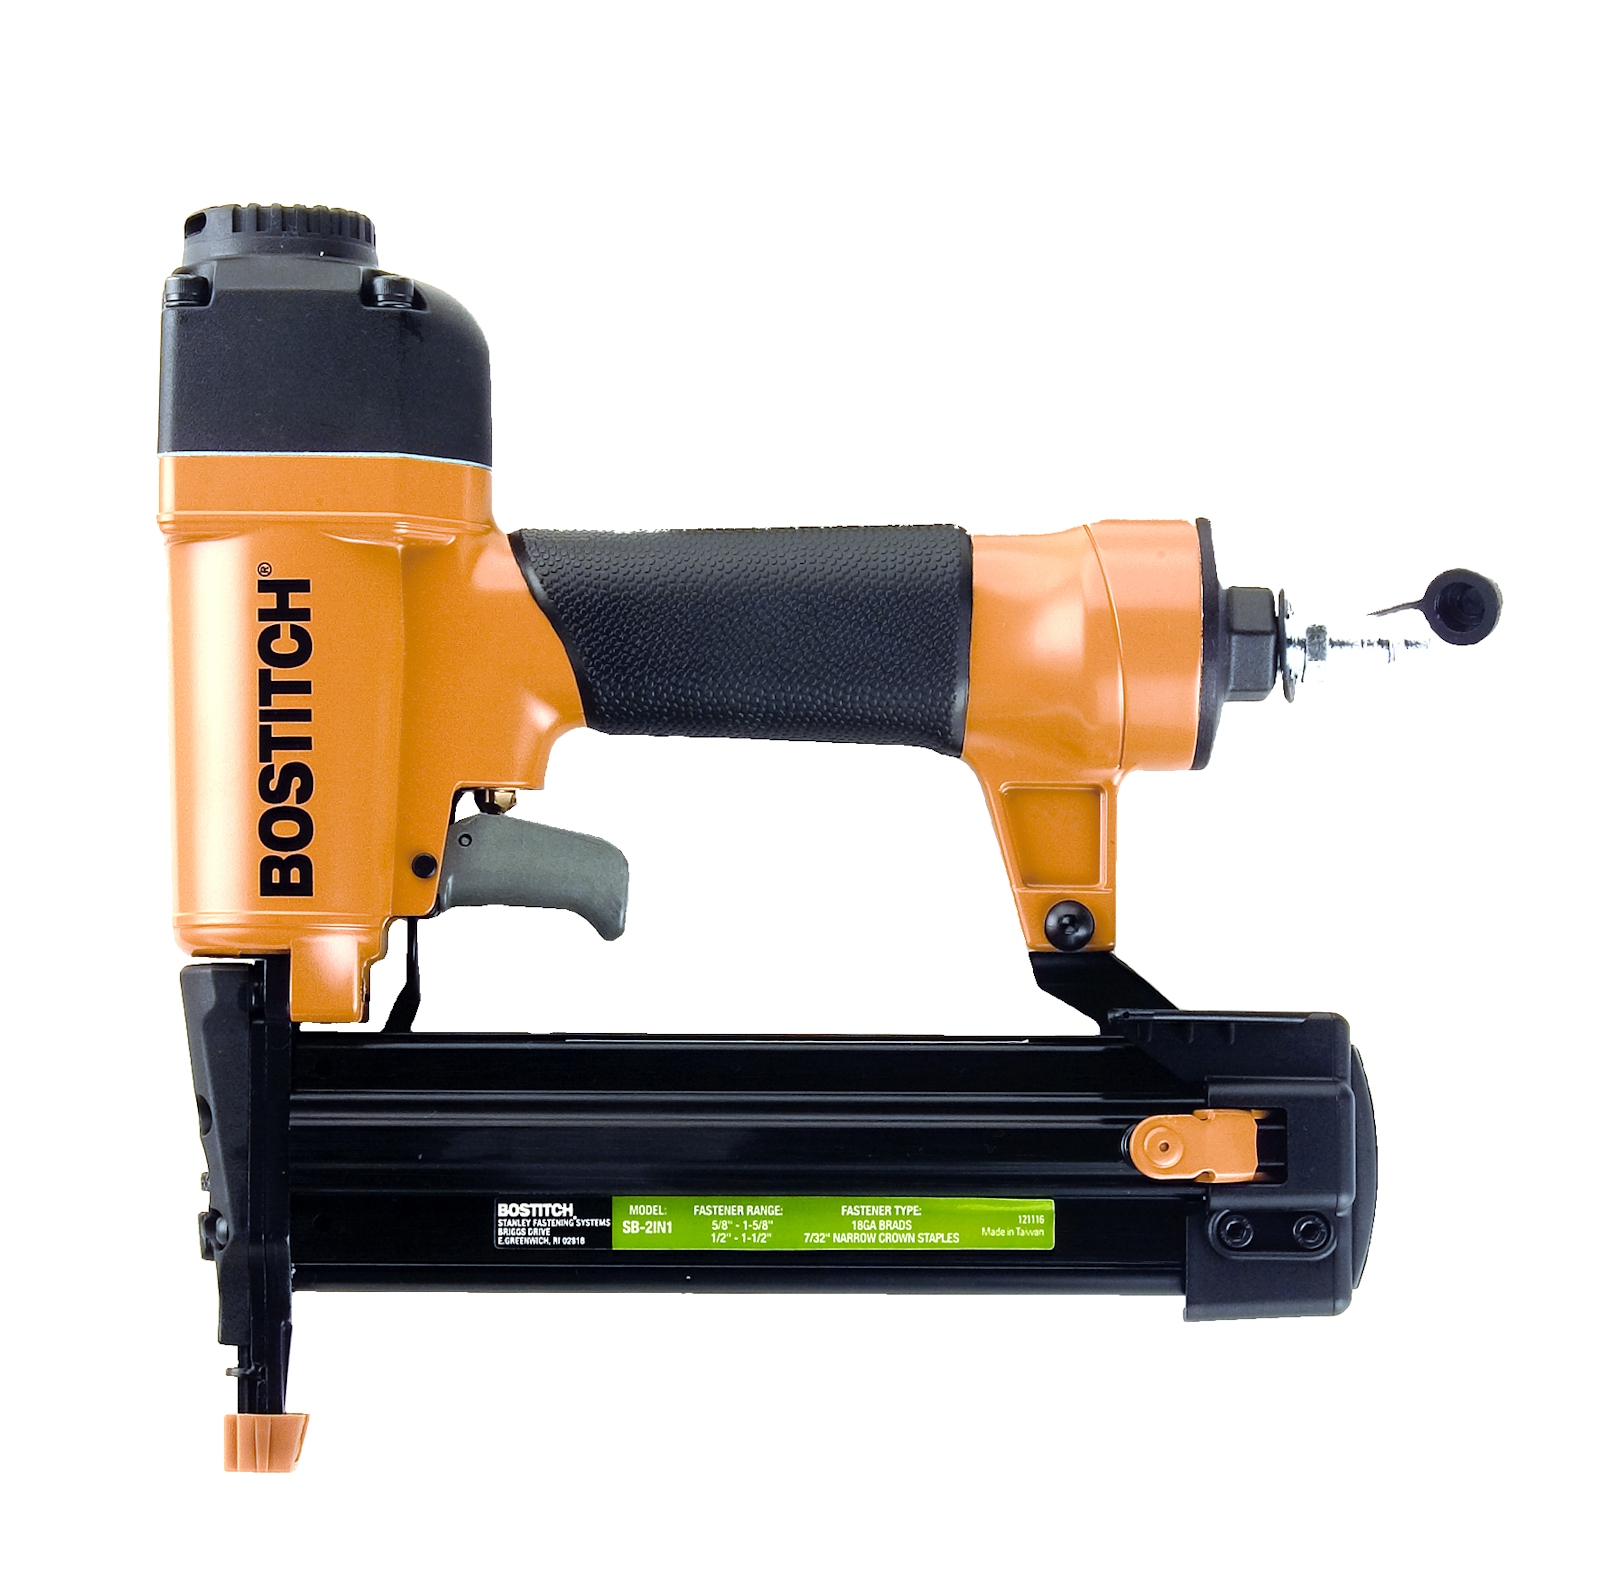 Combo Brad Nailer / Finish Stapler SB-2IN1